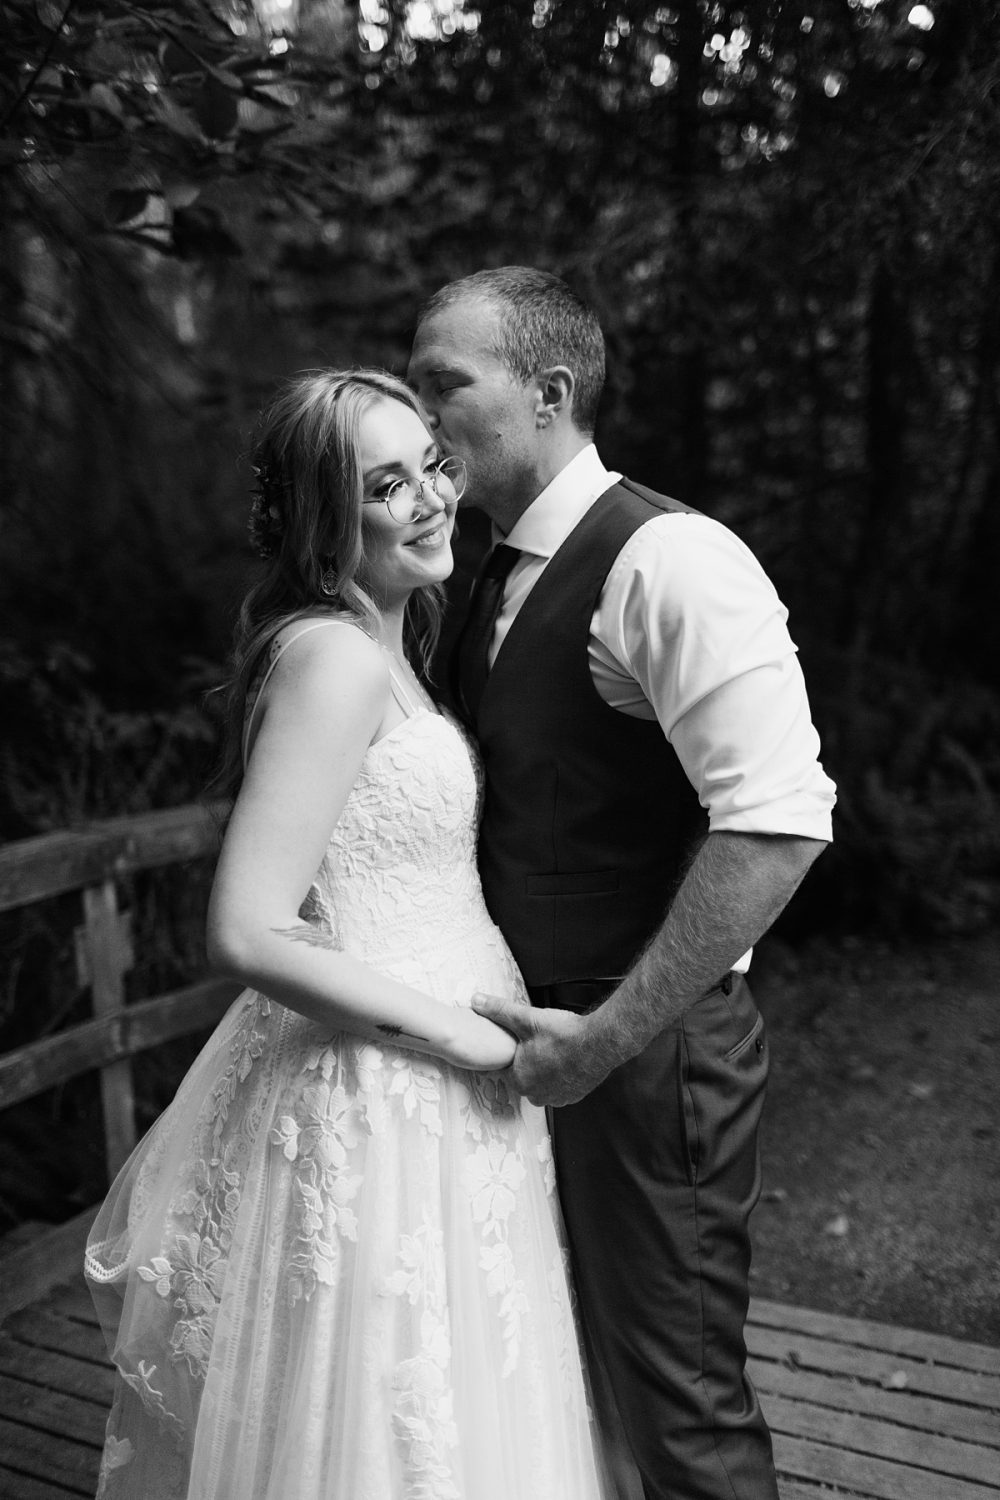 beau lodge wedding bride and groom portraits in forested area with a bridge